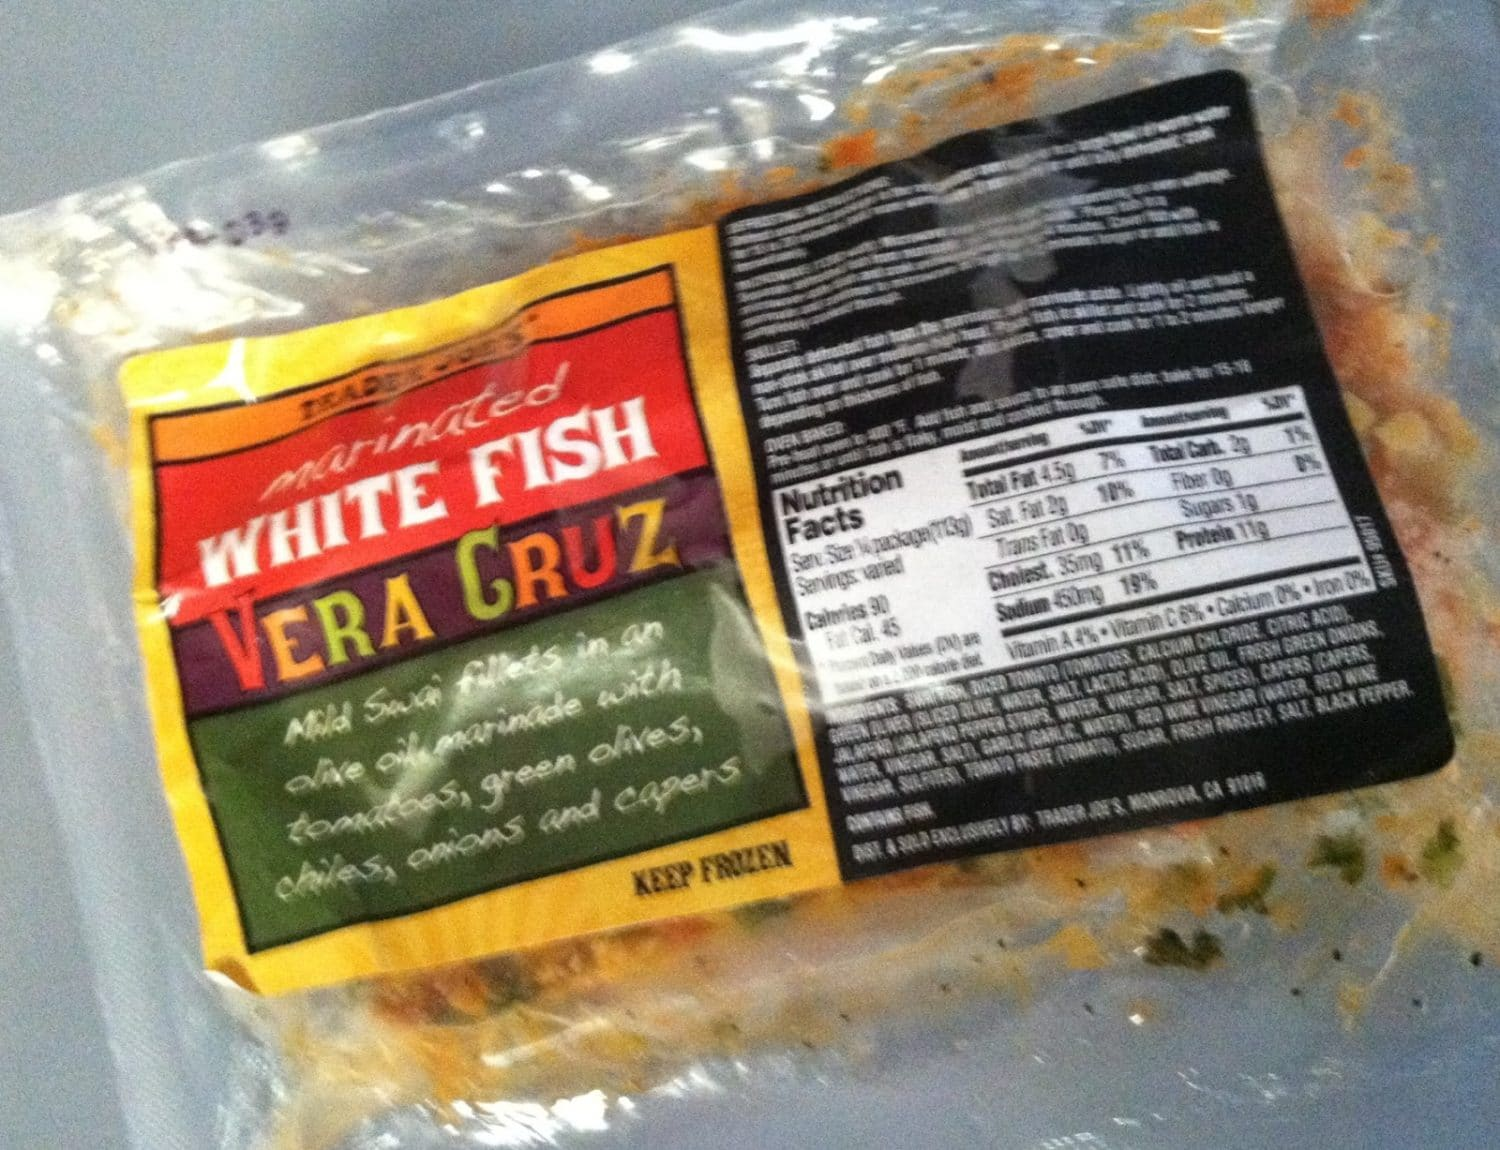 Marinated White Fish Vera Cruz From Trader Joe 39 S